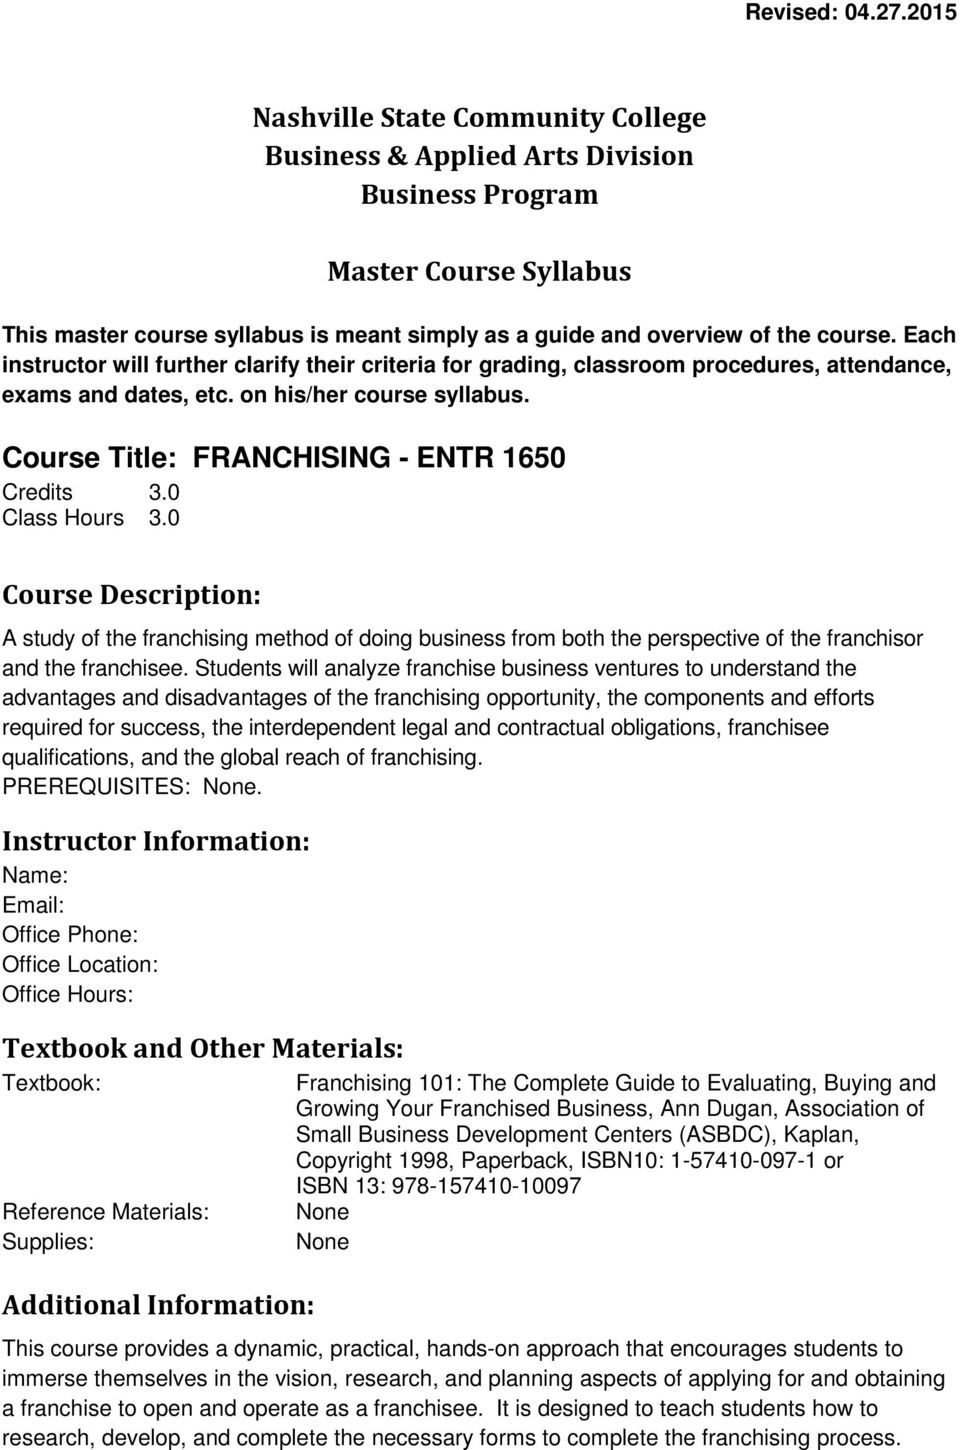 Each instructor will further clarify their criteria for grading, classroom procedures, attendance, exams and dates, etc. on his/her course syllabus. Course Title: FRANCHISING - ENTR 1650 Credits 3.